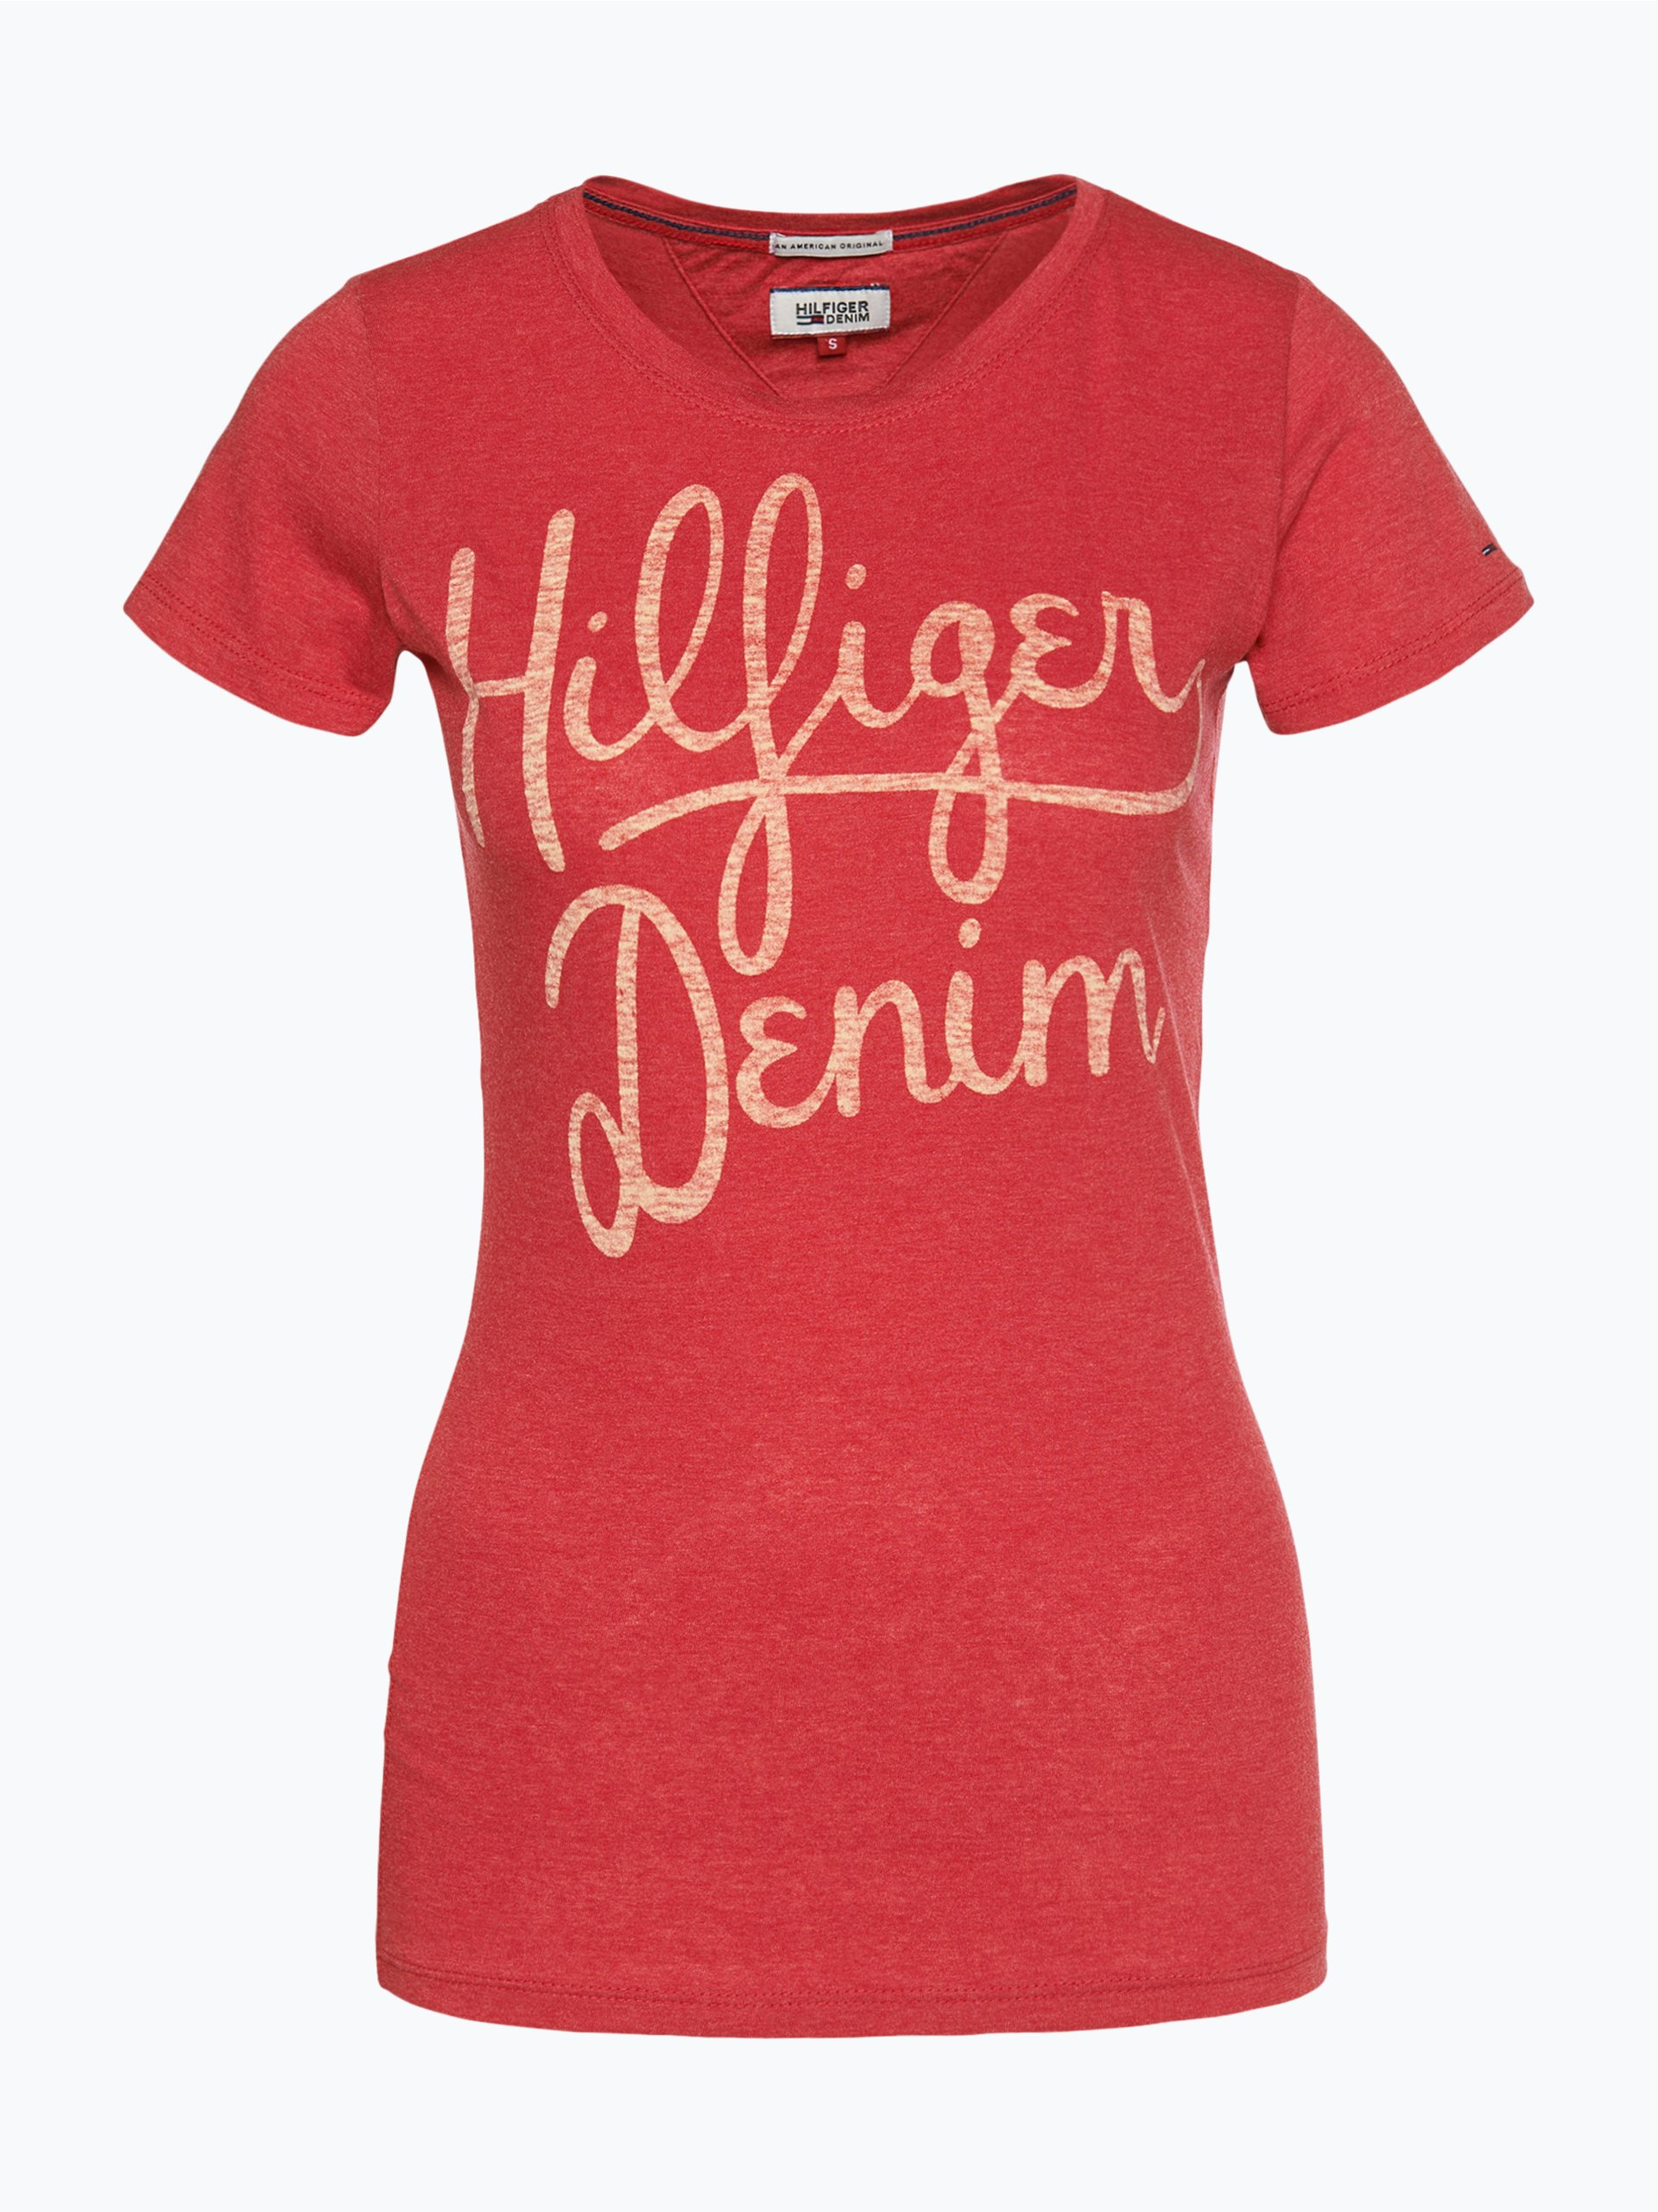 hilfiger denim damen t shirt rot uni online kaufen peek. Black Bedroom Furniture Sets. Home Design Ideas